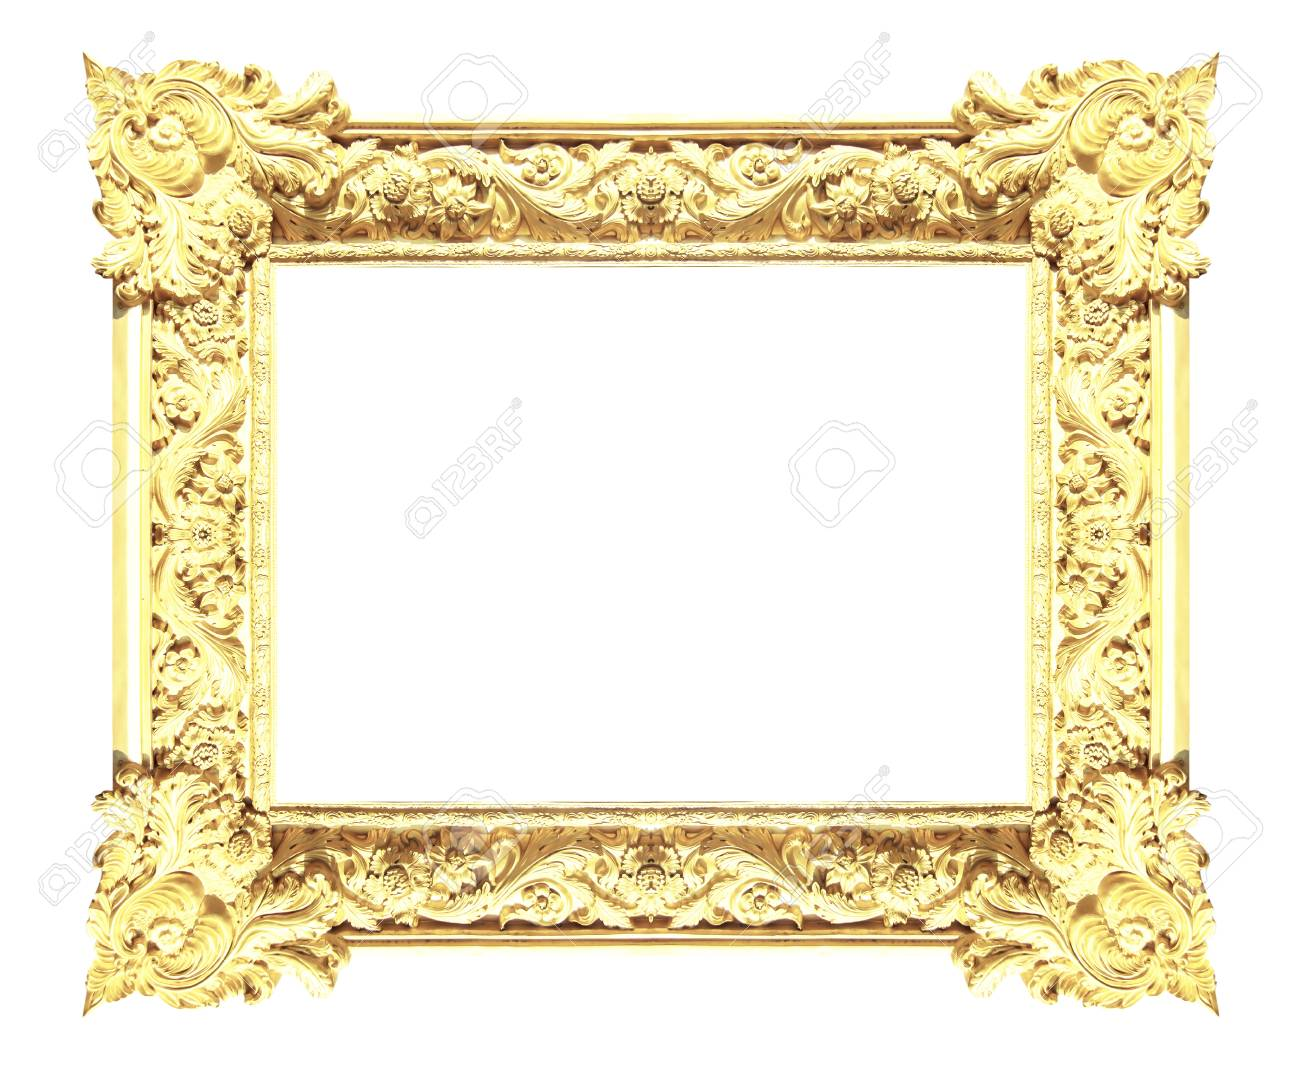 12ade67e180 Picture Gold Frames Isolated On White Background Stock Photo